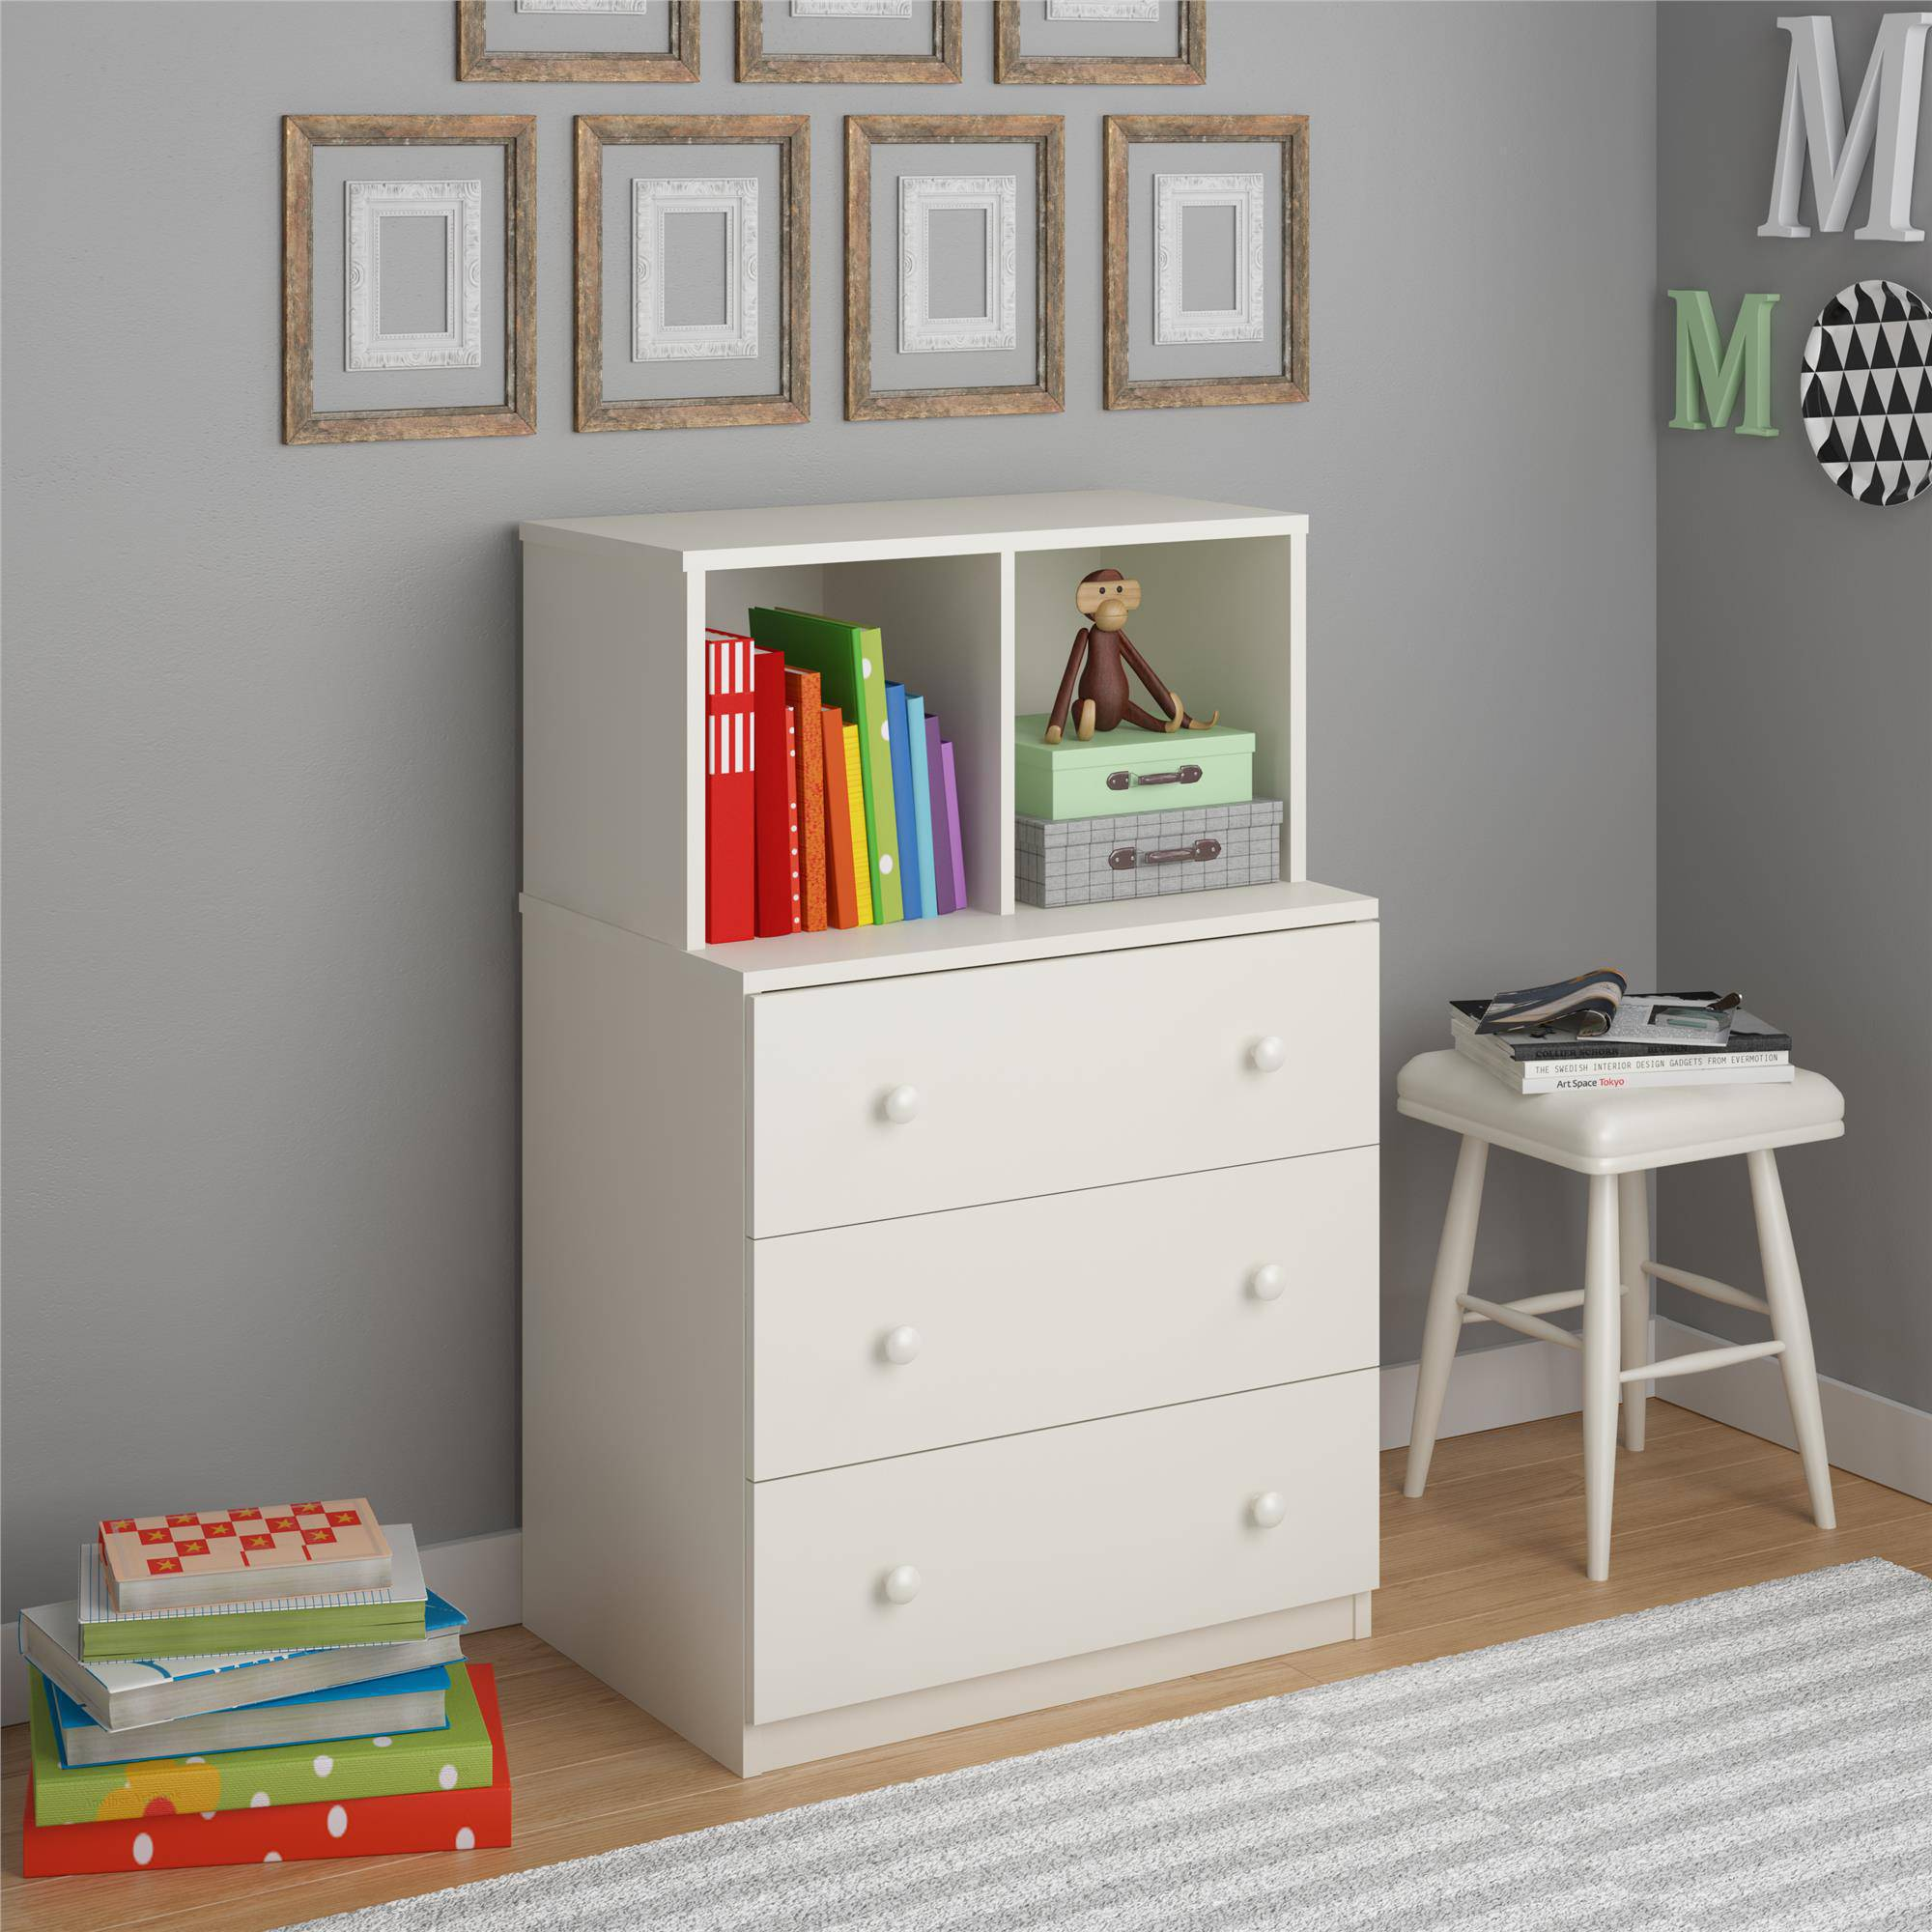 Skyler Kids' Dresser with Cubbies by Altra, White Stipple